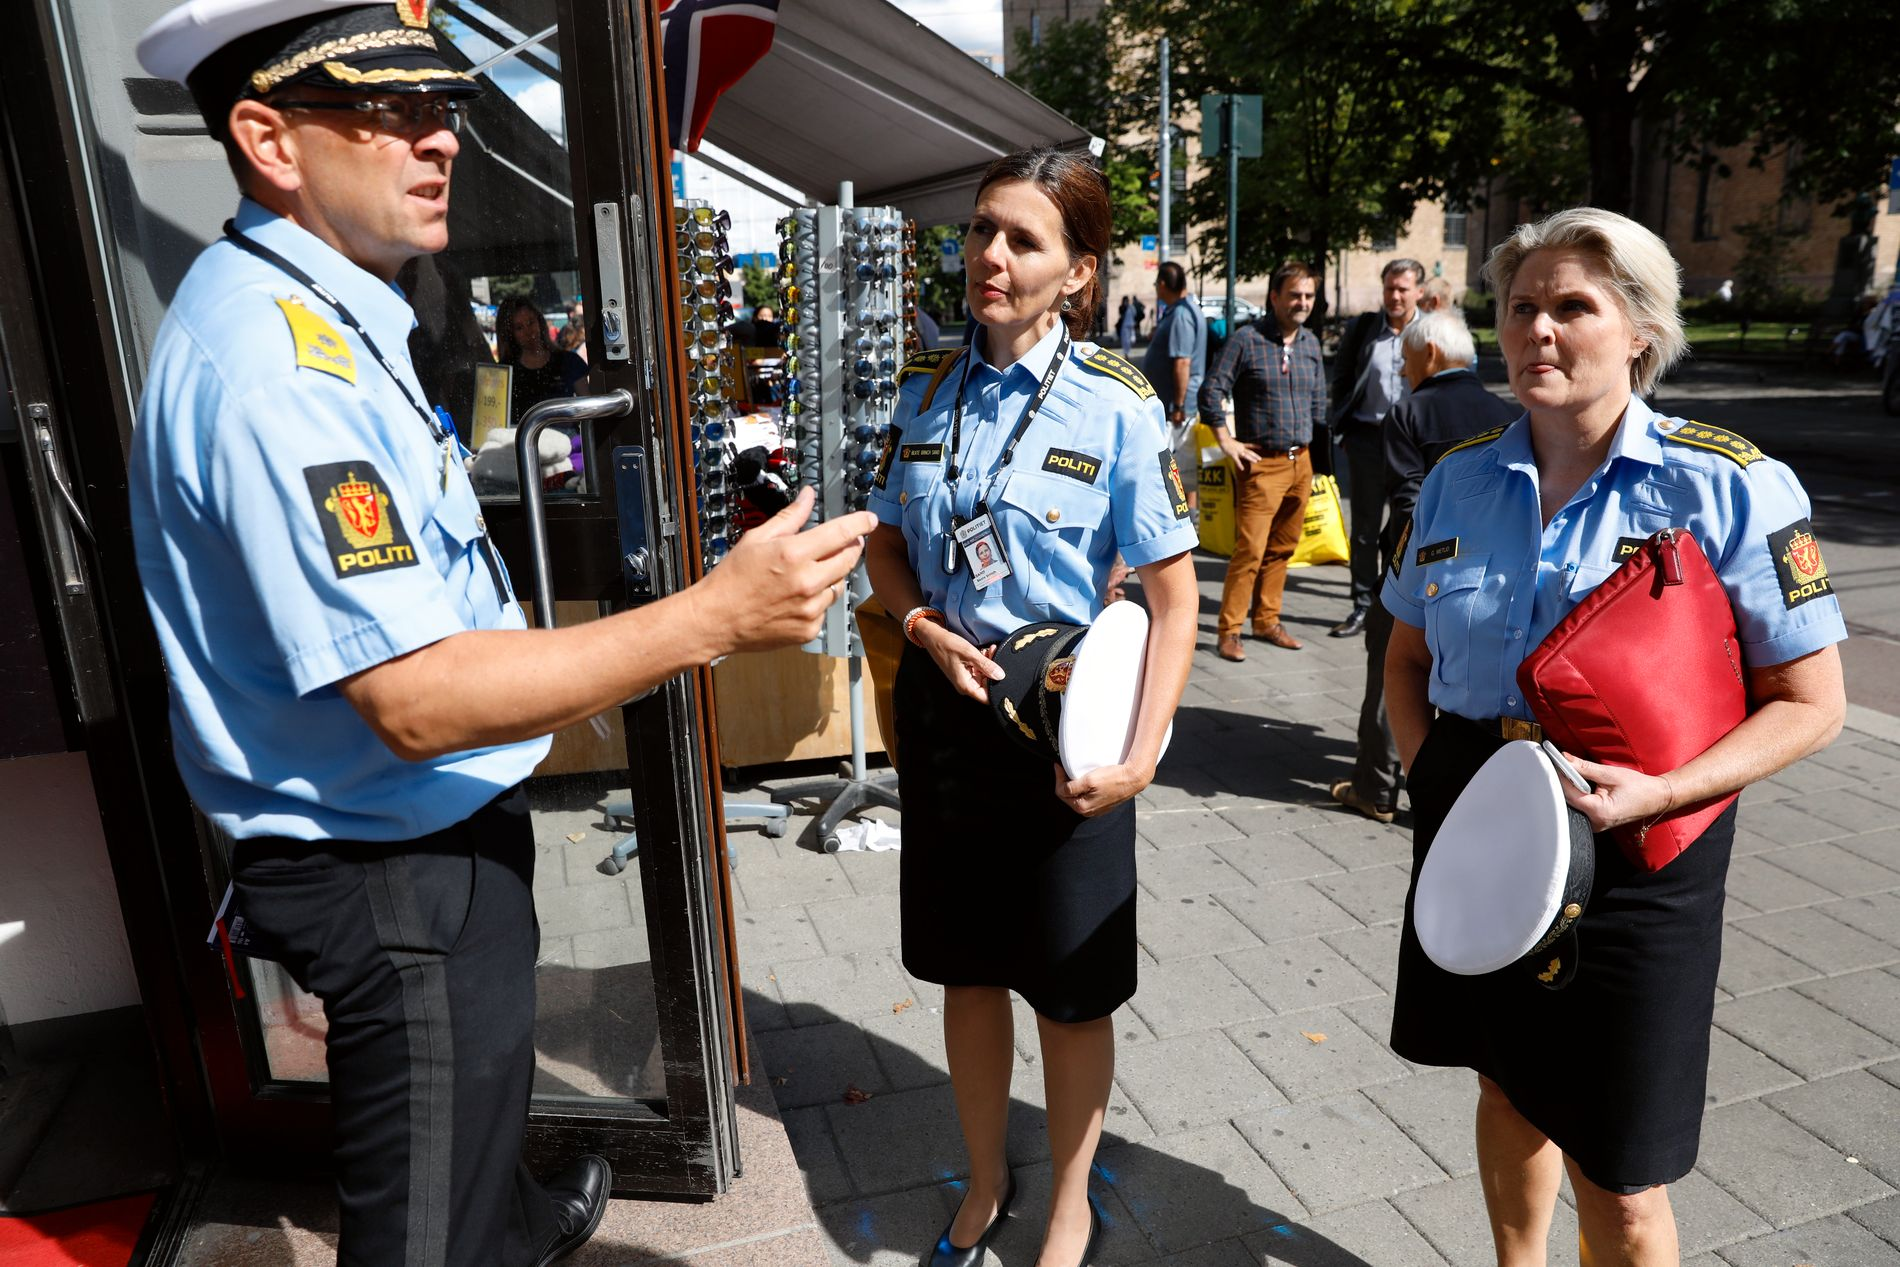 IMPORTANT MEETING: The meeting participants from the Oslo police district arrive at the Riksadvokaten site. From left: Vision Policy Governor Bjørn Vandvik, Attorney General Beate Brinch and head of Intelligence and Investigation, Grete Lien Metlid.